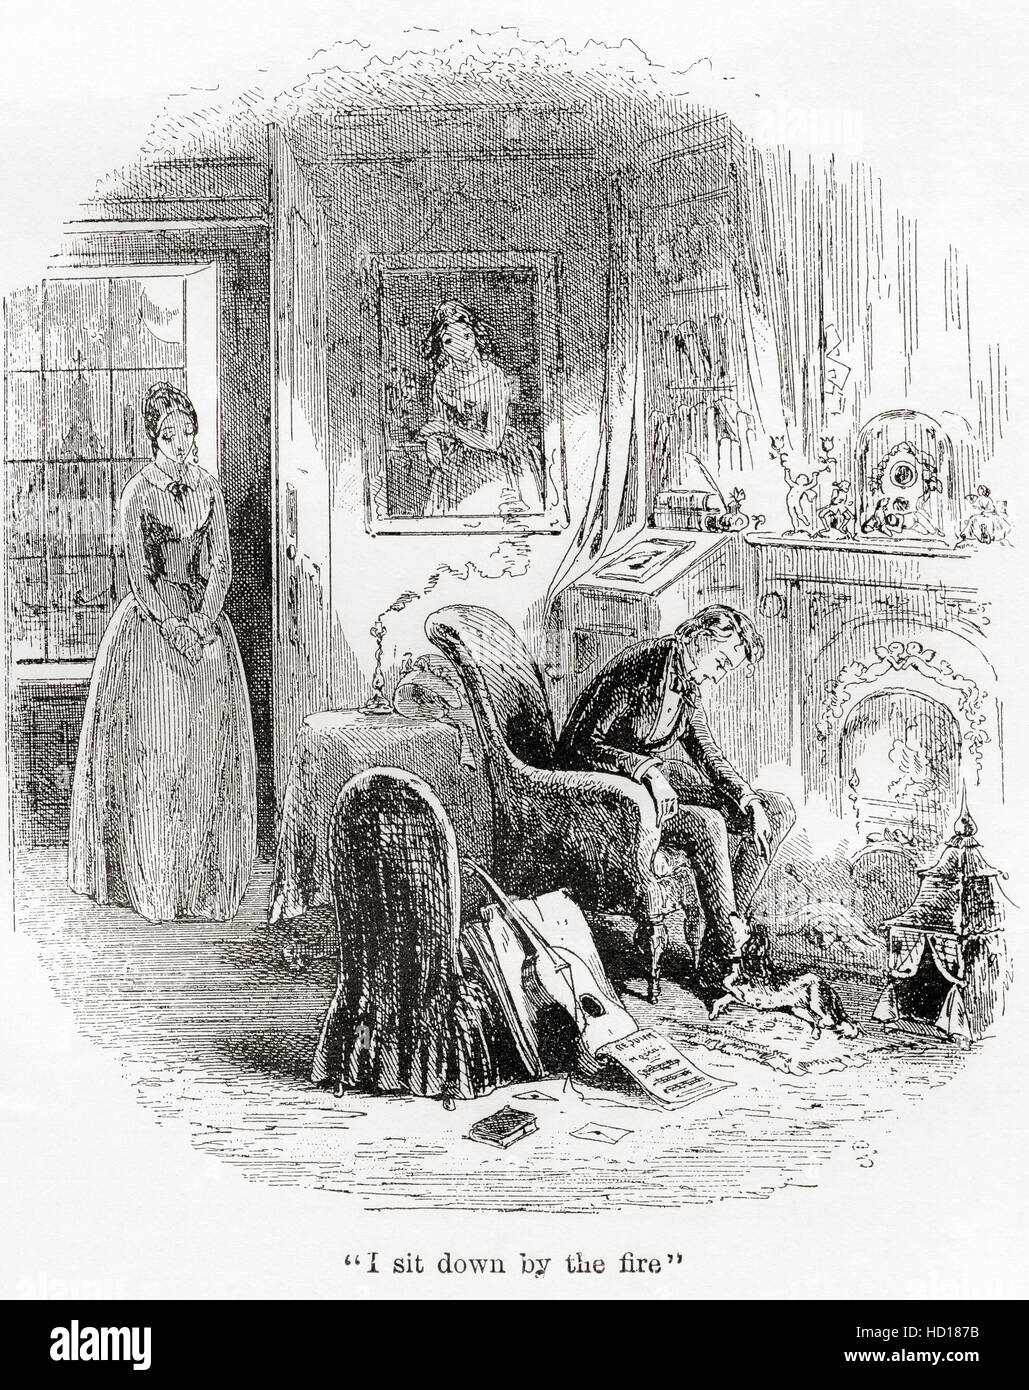 the death of dora illustration from the charles dicken s novel stock photo the death of dora illustration from the charles dicken s novel david copperfield charles john huffam dickens 1812 1870